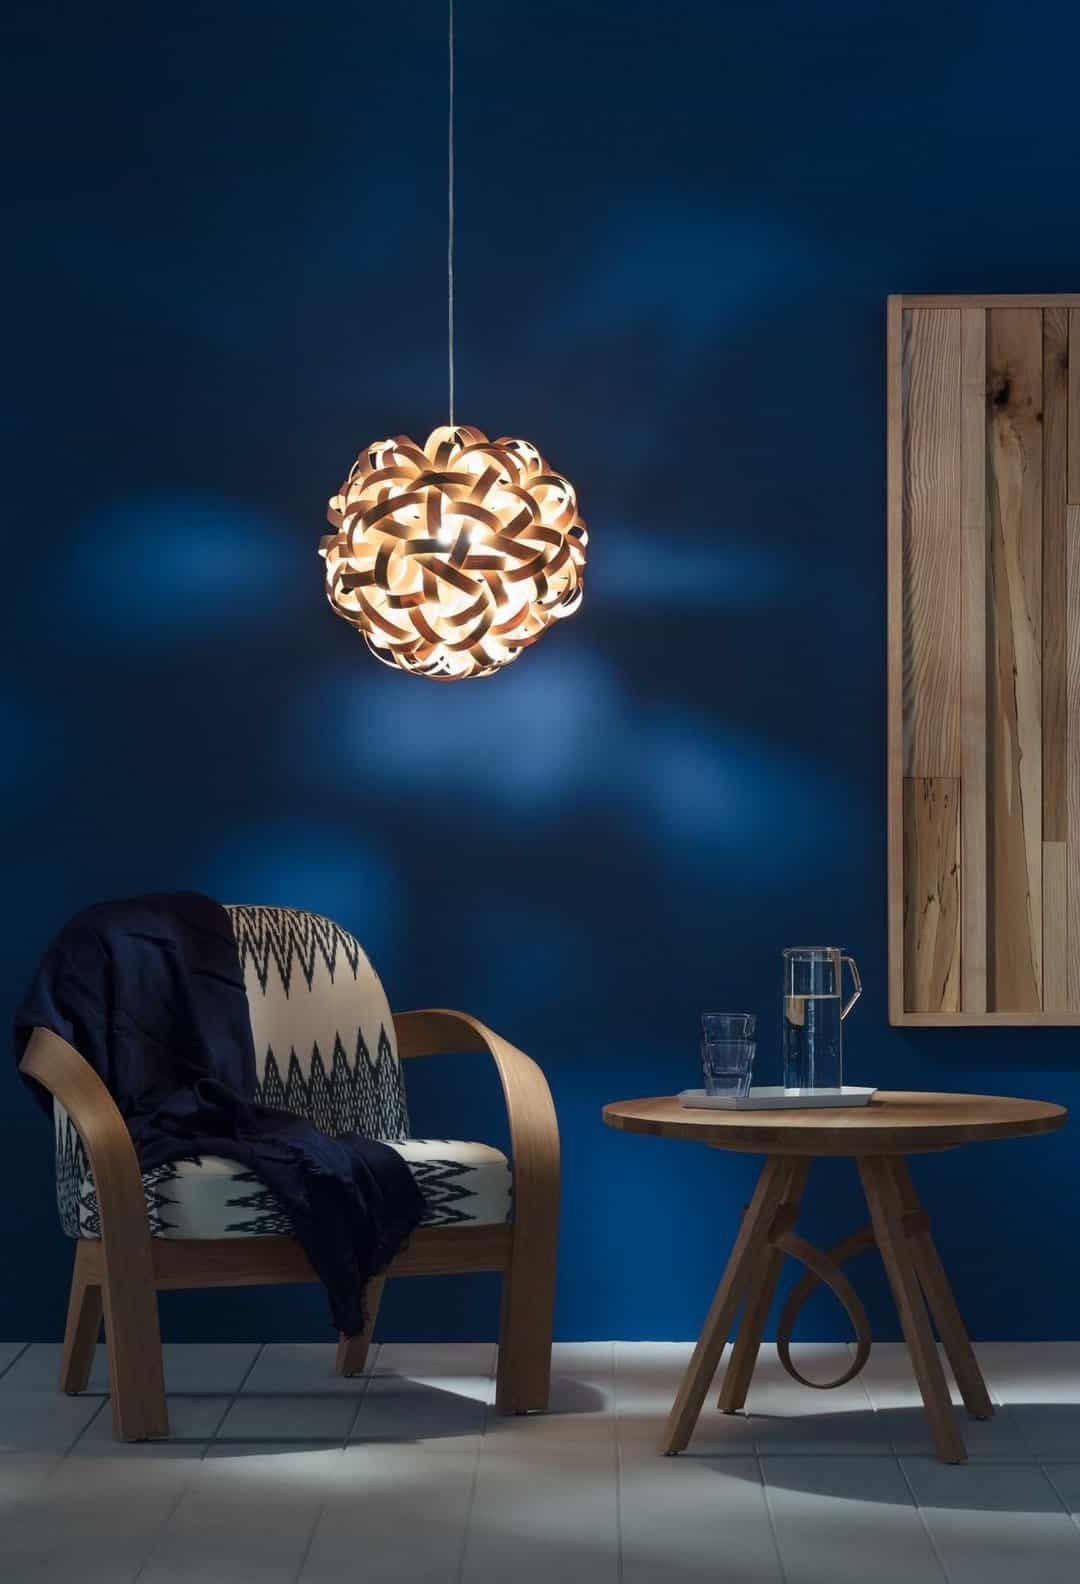 Love This No 1 Pendant Light In Natural Wood Against A Dark Blue Background By Tom Raffield Using Steam Bent Sustainable Timber To Create Award Winning Lightin